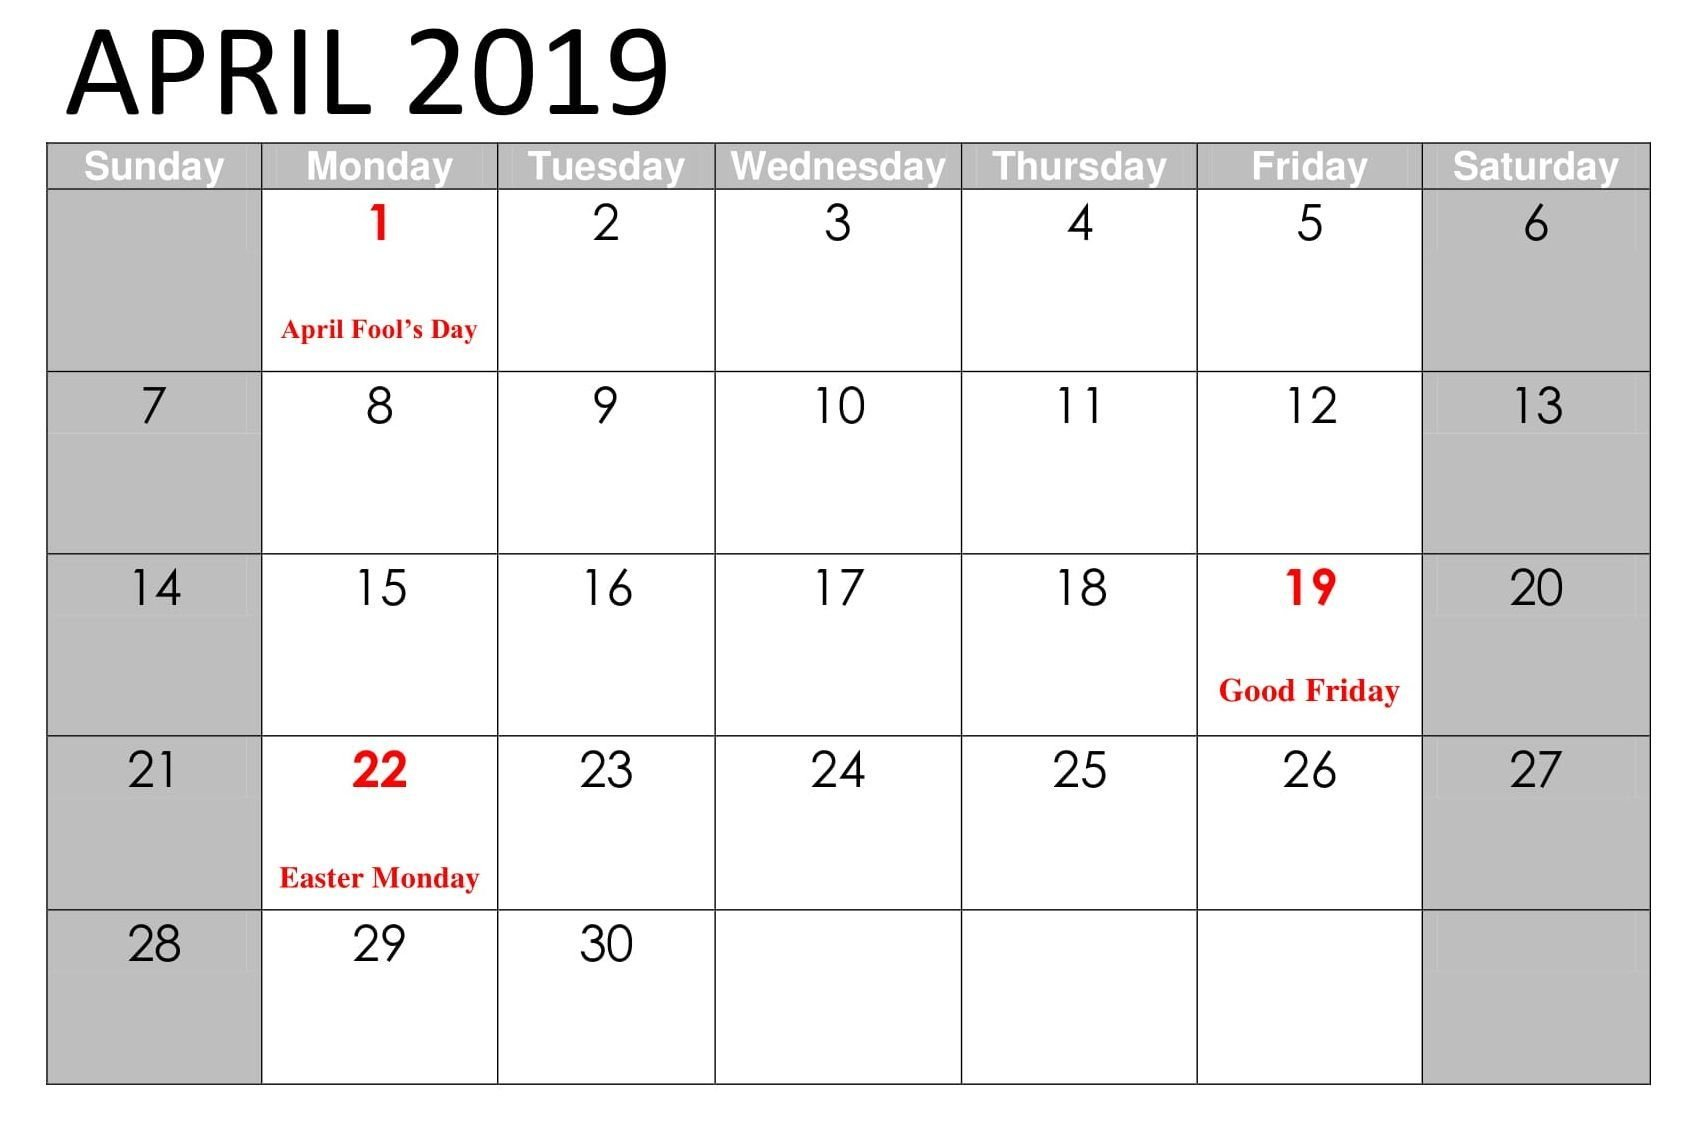 April 2019 Calendar Printable With Holidays | April 2019 Calendar Calendar 2019 Events And Holidays